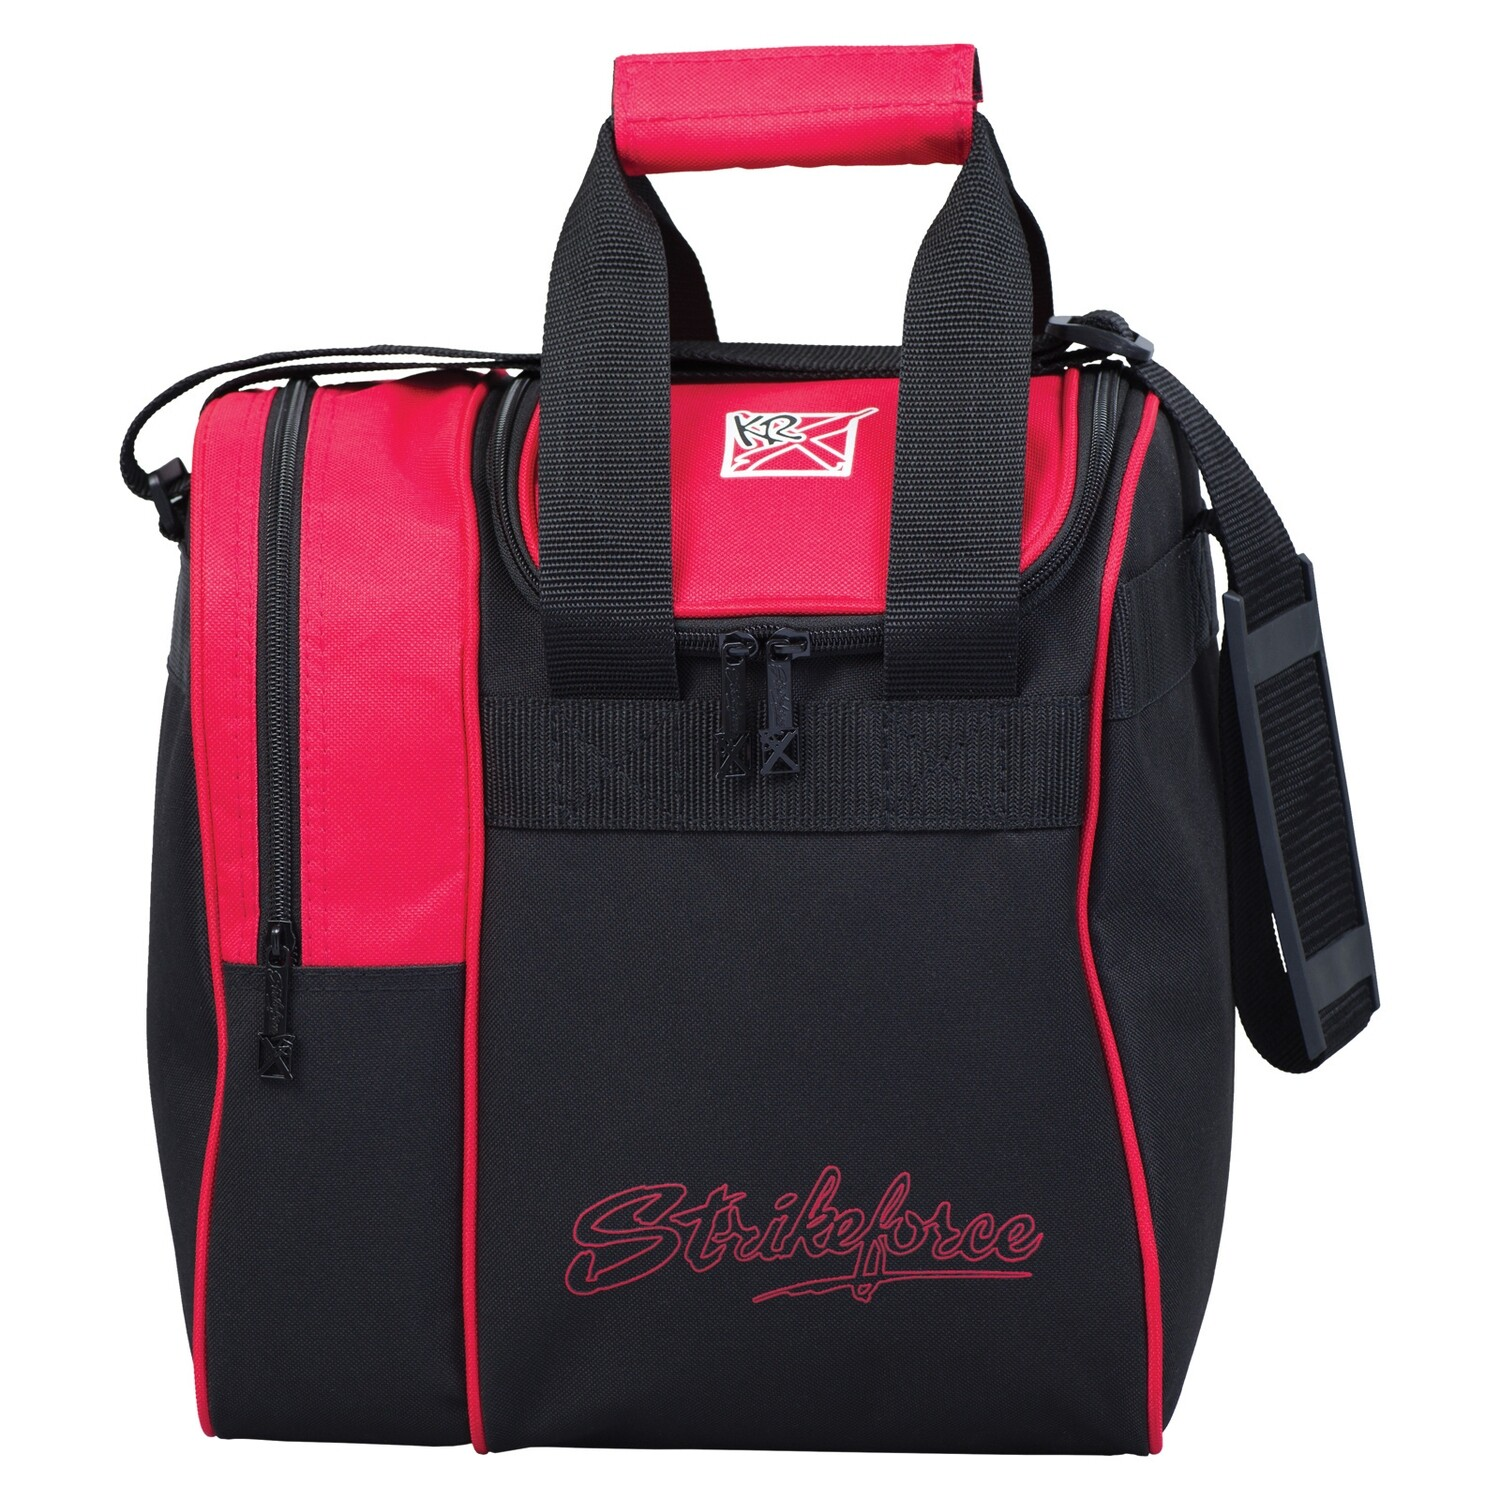 KR Strikeforce Rook Red Single Tote Bowling Bag